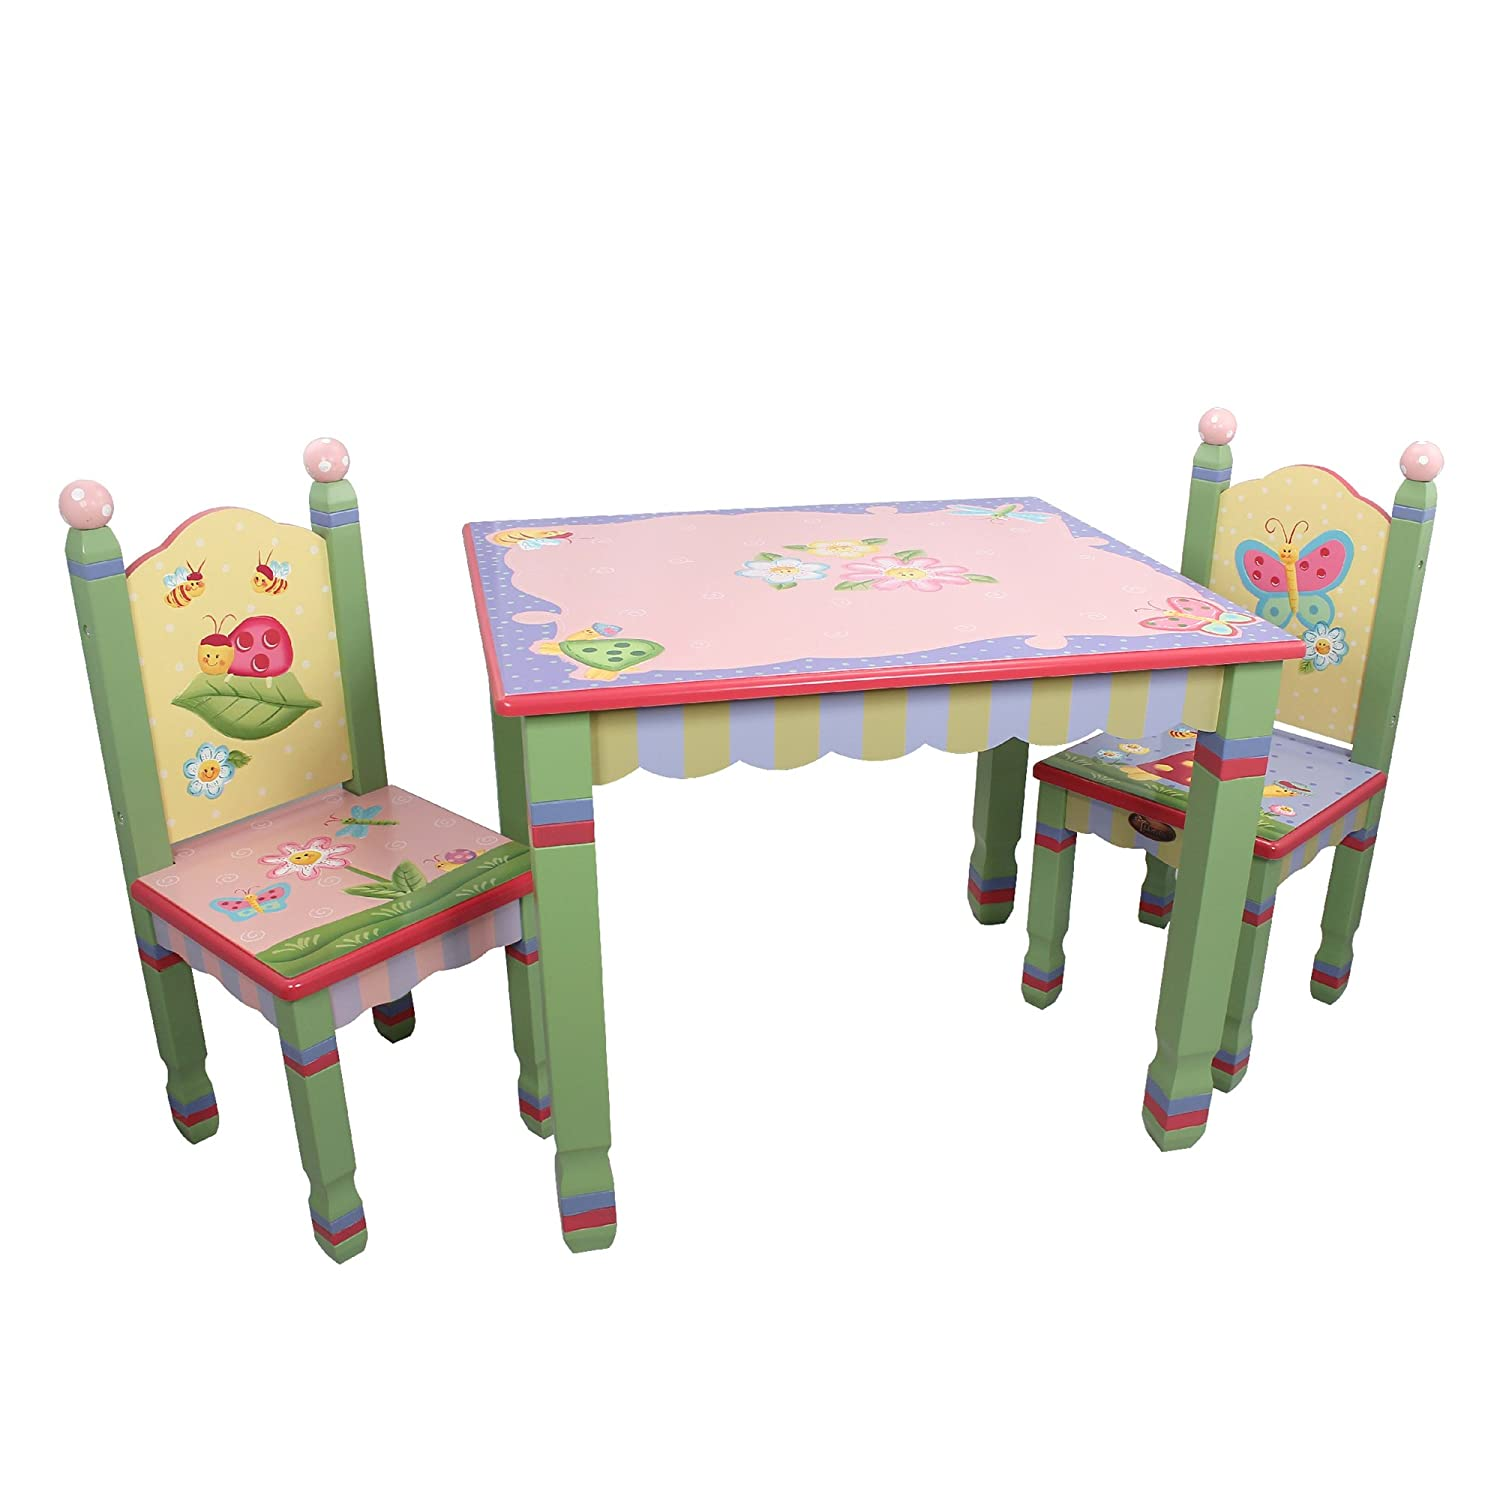 amazoncom fantasy fields magic garden thematic hand crafted kids wooden table and 2 chairs set imagination inspiring hand crafted u0026 hand painted details - Kid Table And Chair Set